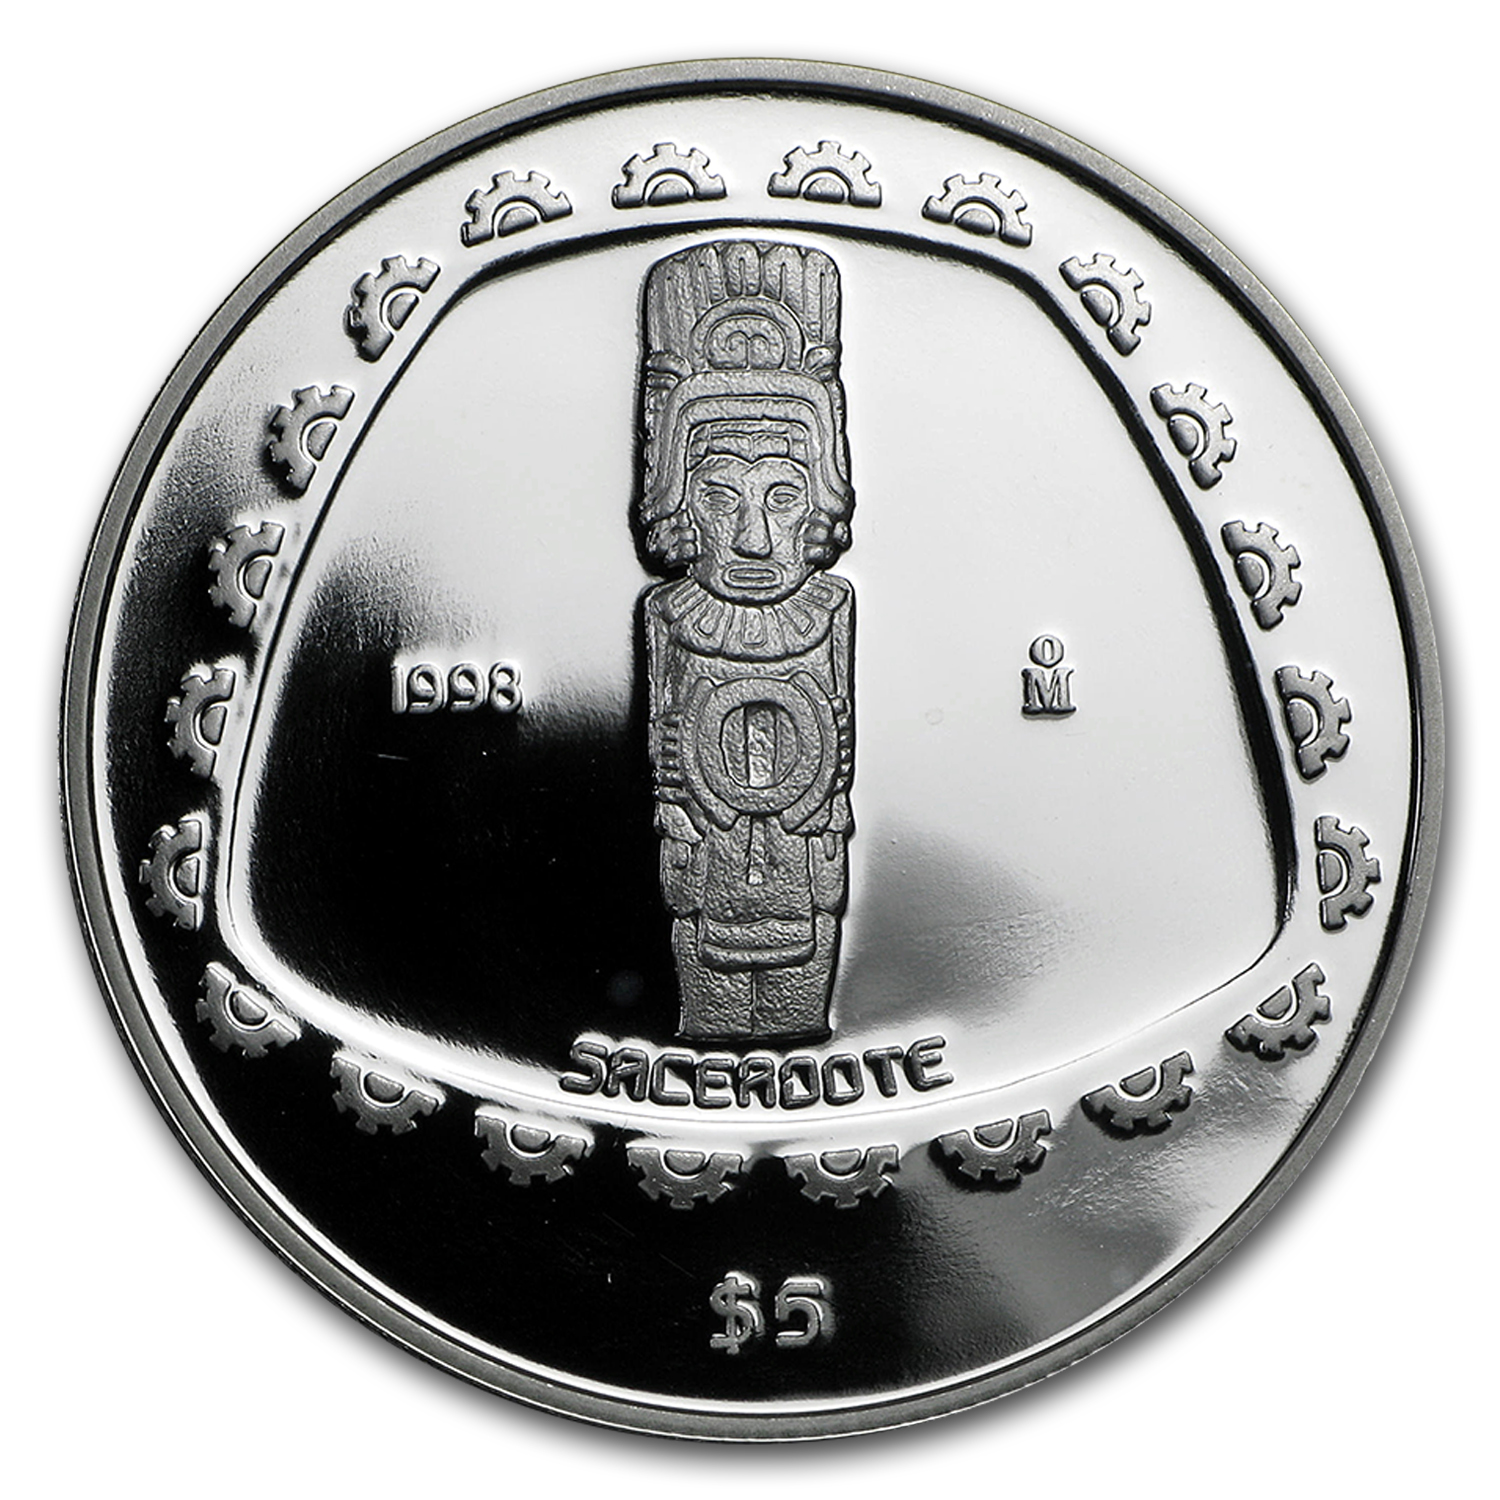 1998 1 oz Silver Mexican 5 Pesos Sacerdote Proof